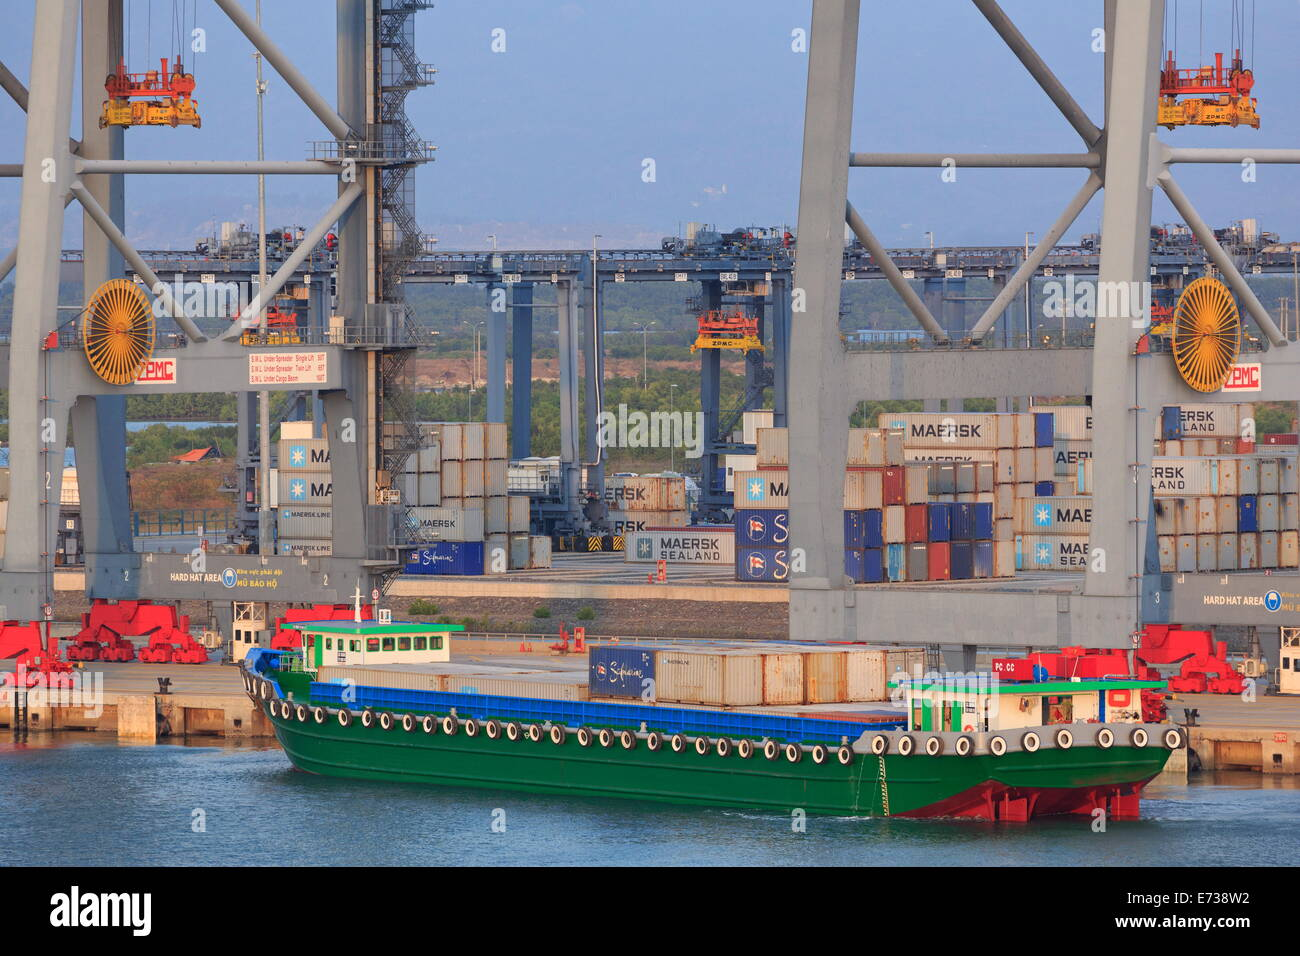 Wonderful Myport Best Choice Of Container Ship In Phu My Port, Ho